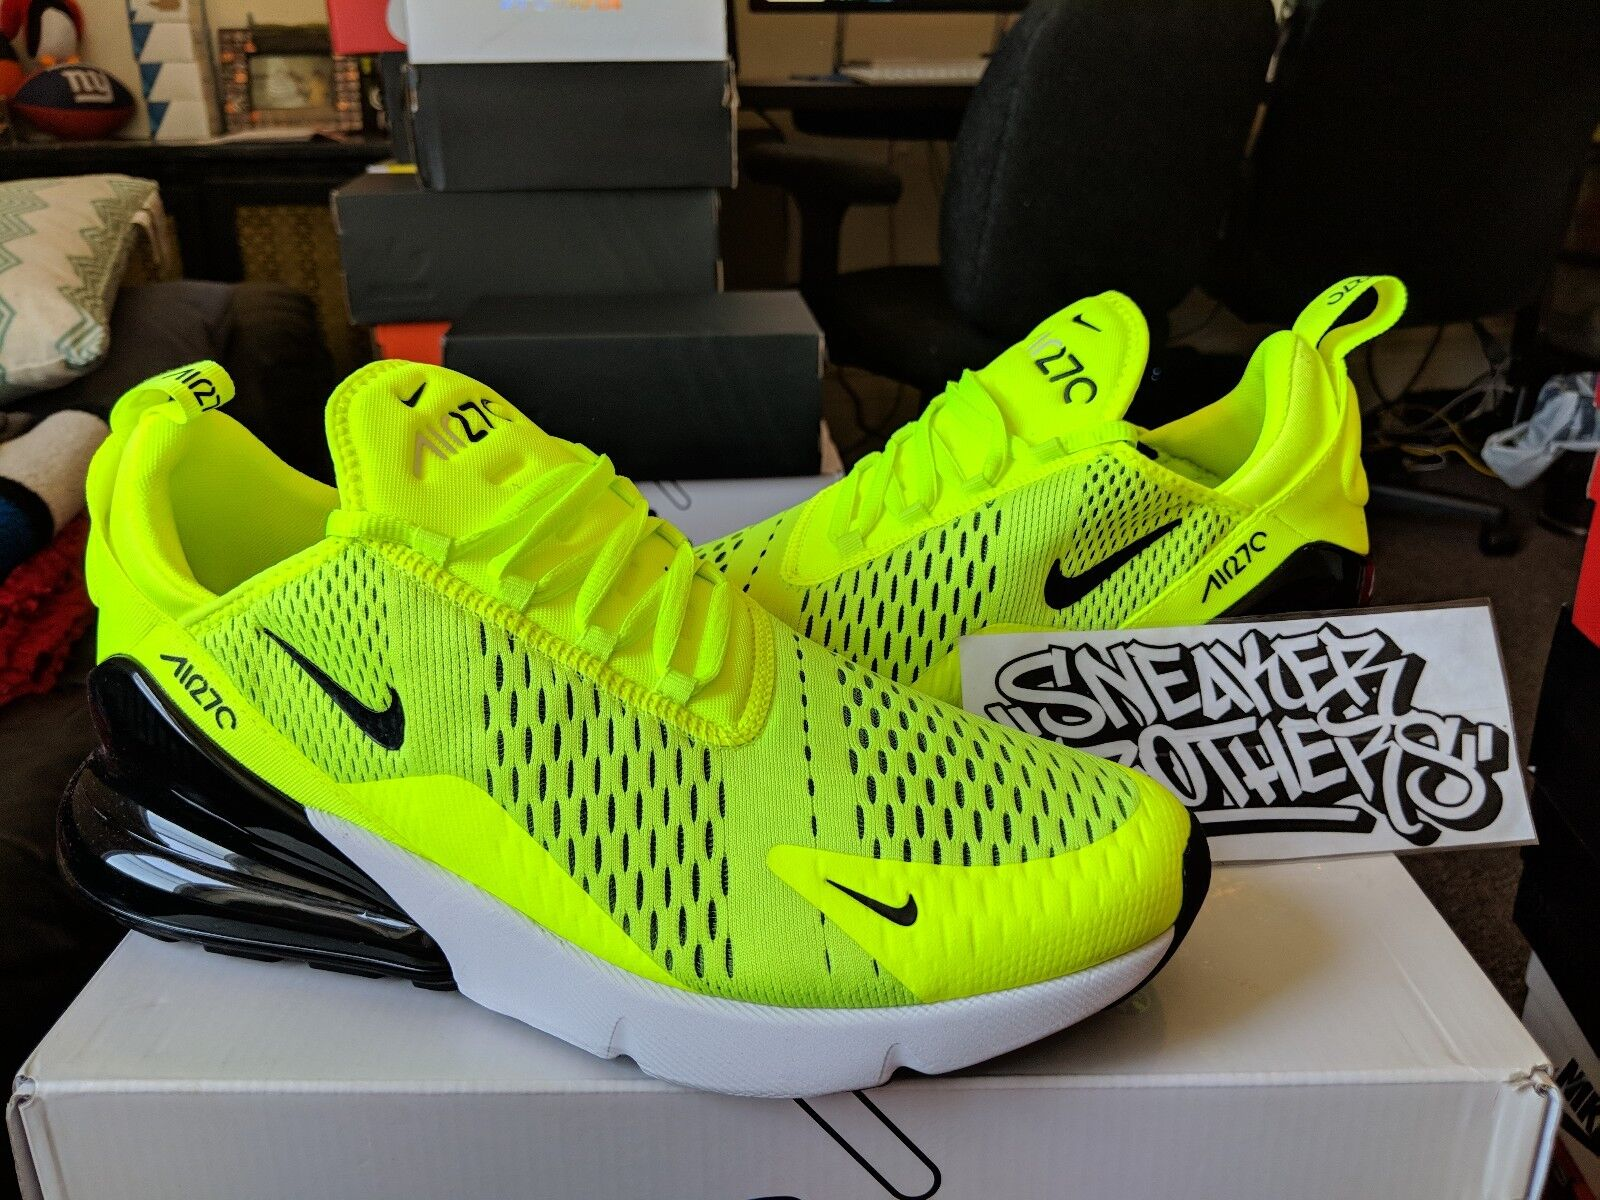 08642d33f85443  Item For sale  New with box   Nike Air Max 270 Volt Black Dark Grey White  Neon Yellow Running Men s AH8050-701